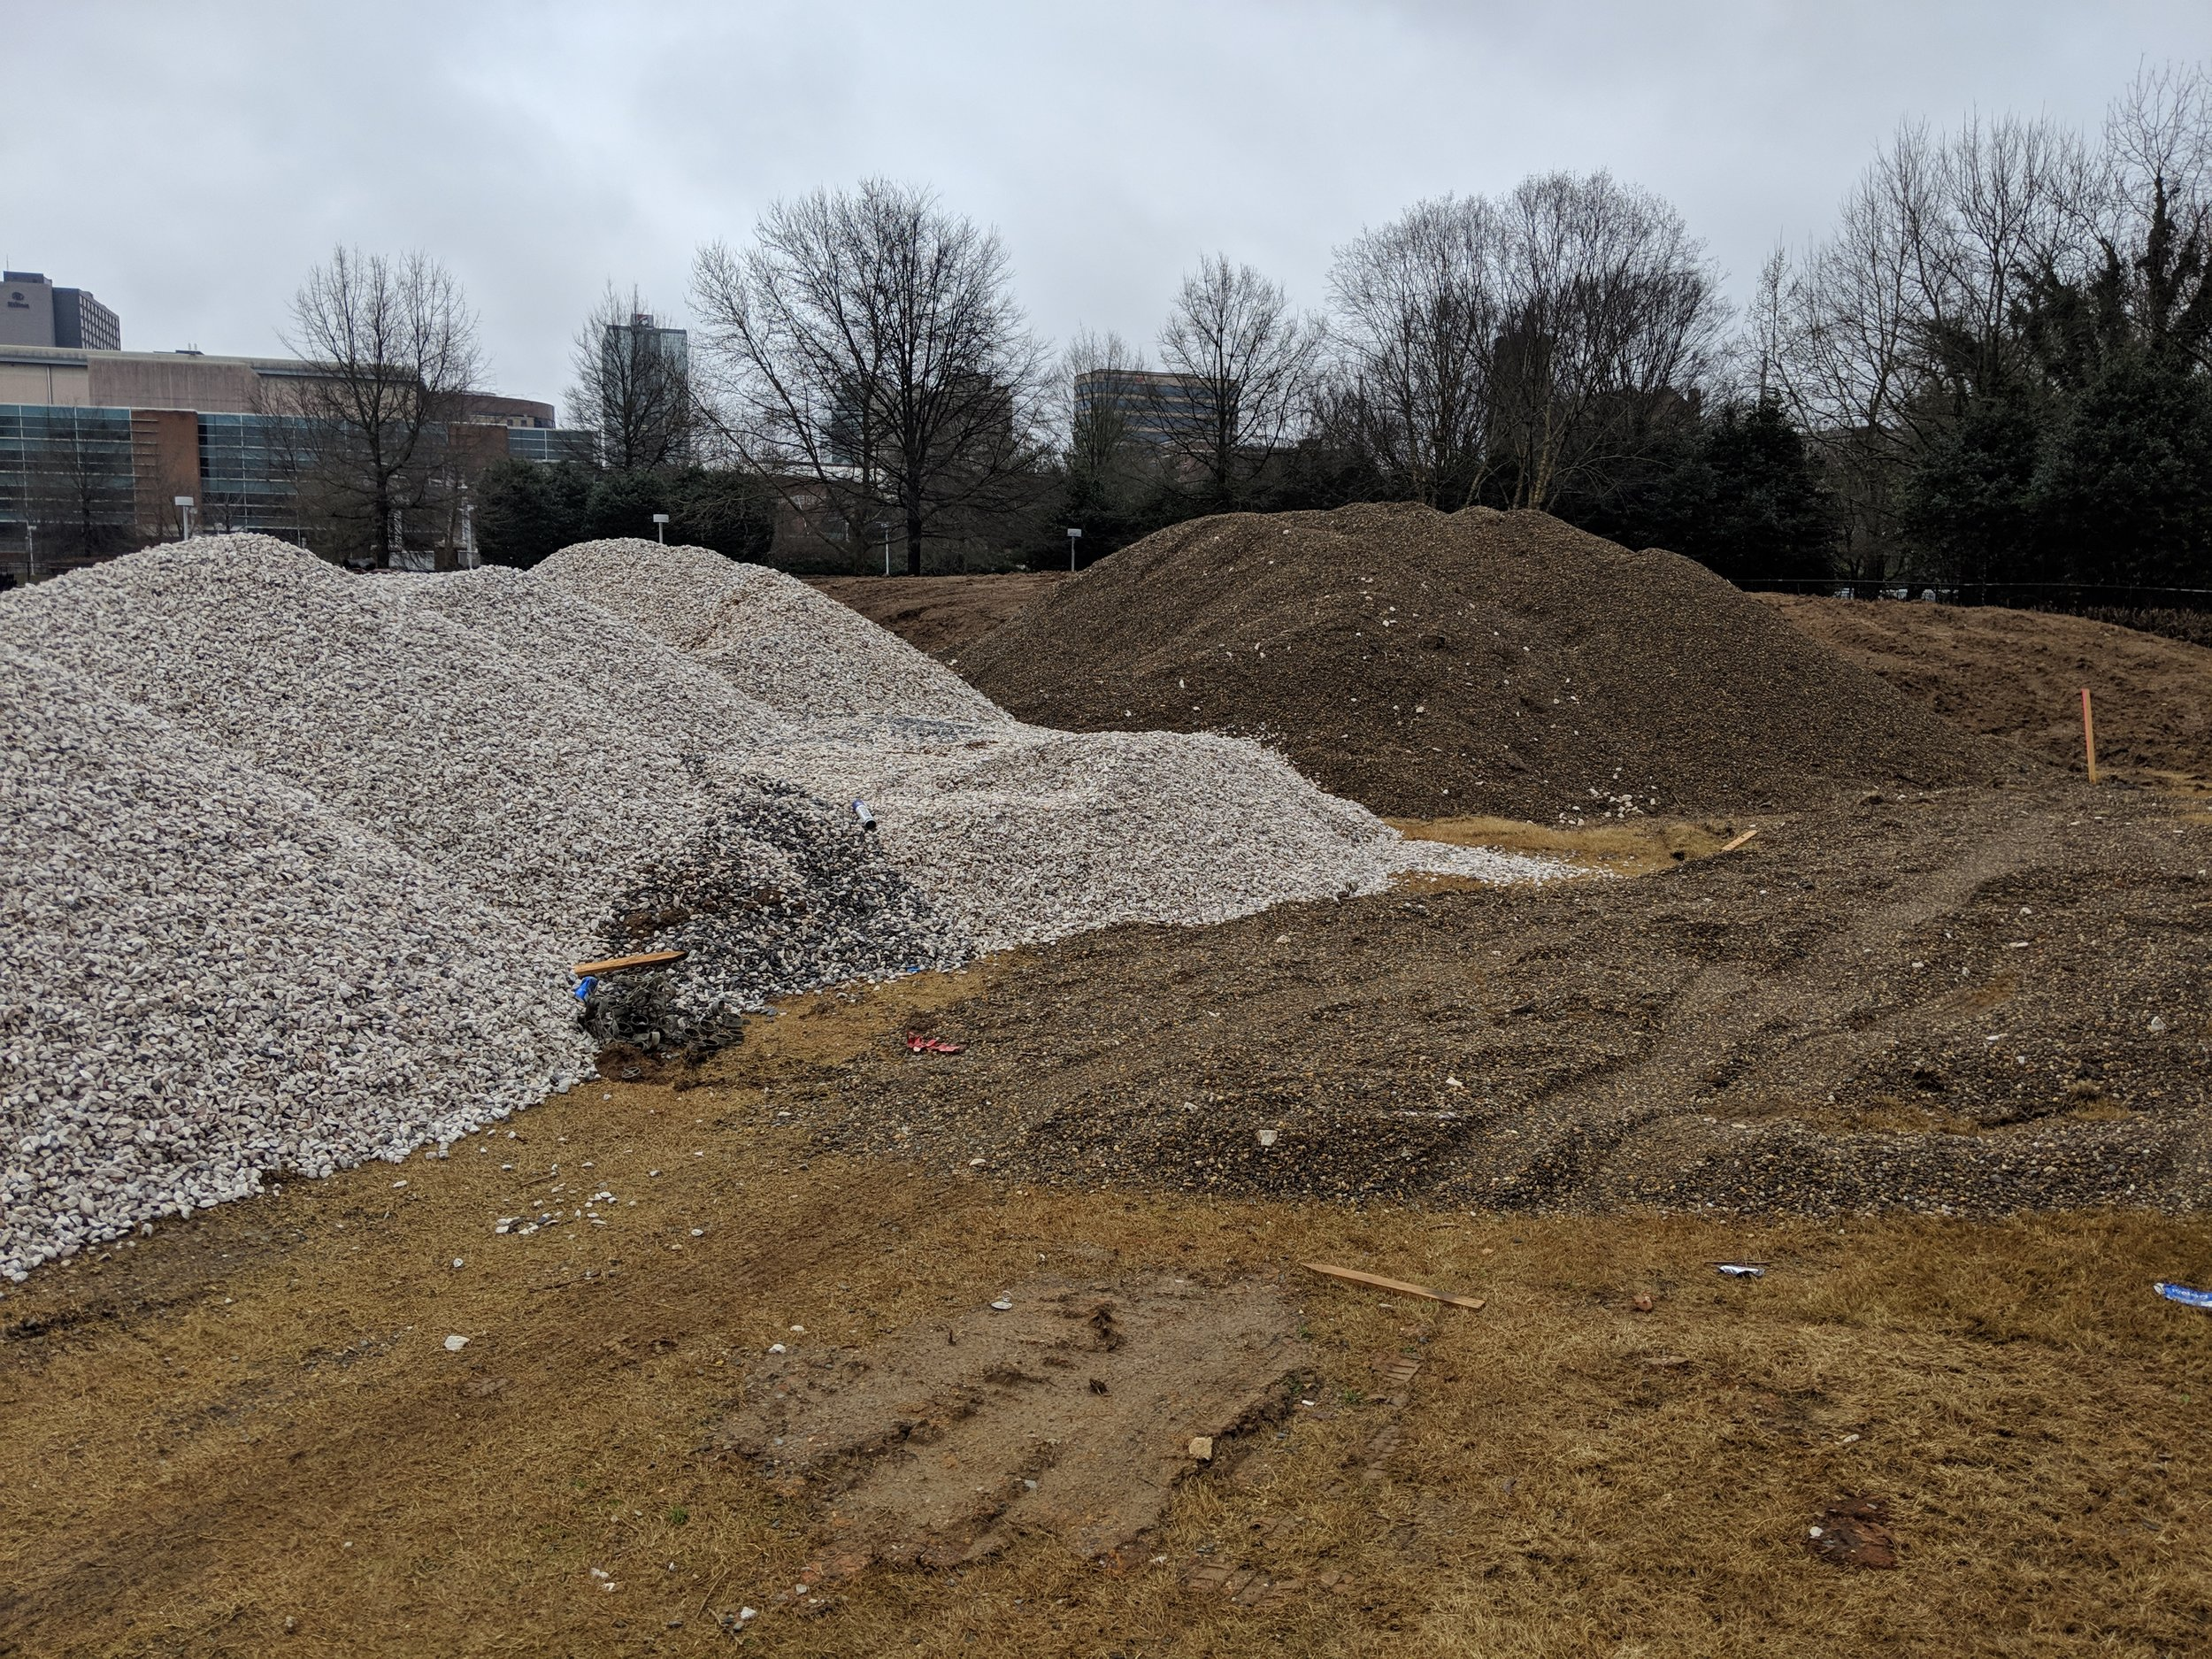 New gravel is stockpiled adjacent to gravel salvaged from the site during demolition.  These stockpiles will be used around the lawn's under-drain system.